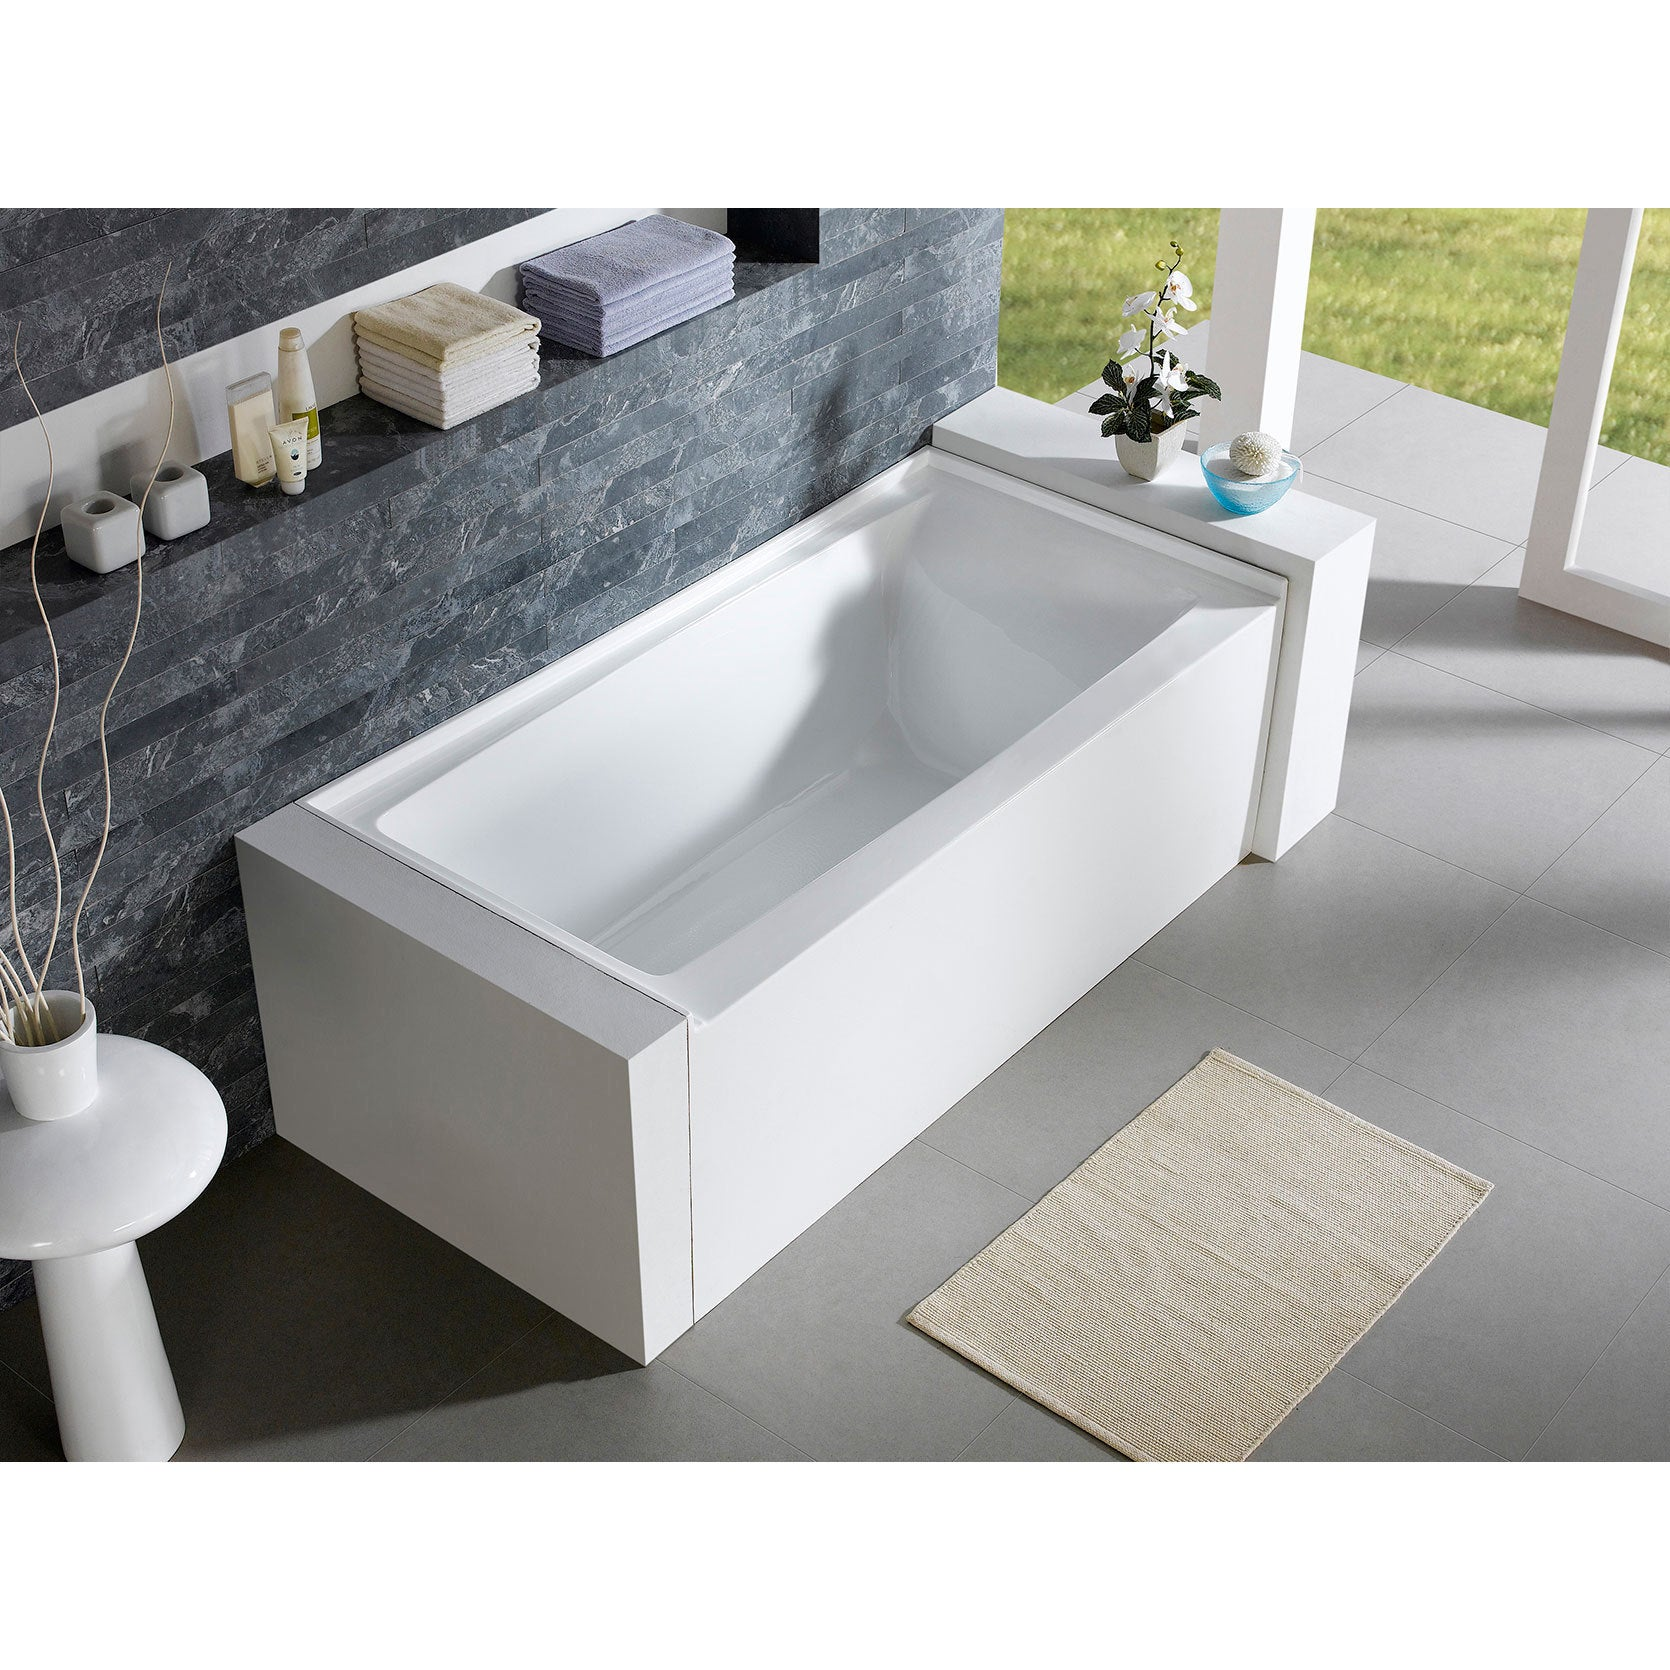 skirted ibis tub castle alcove x front